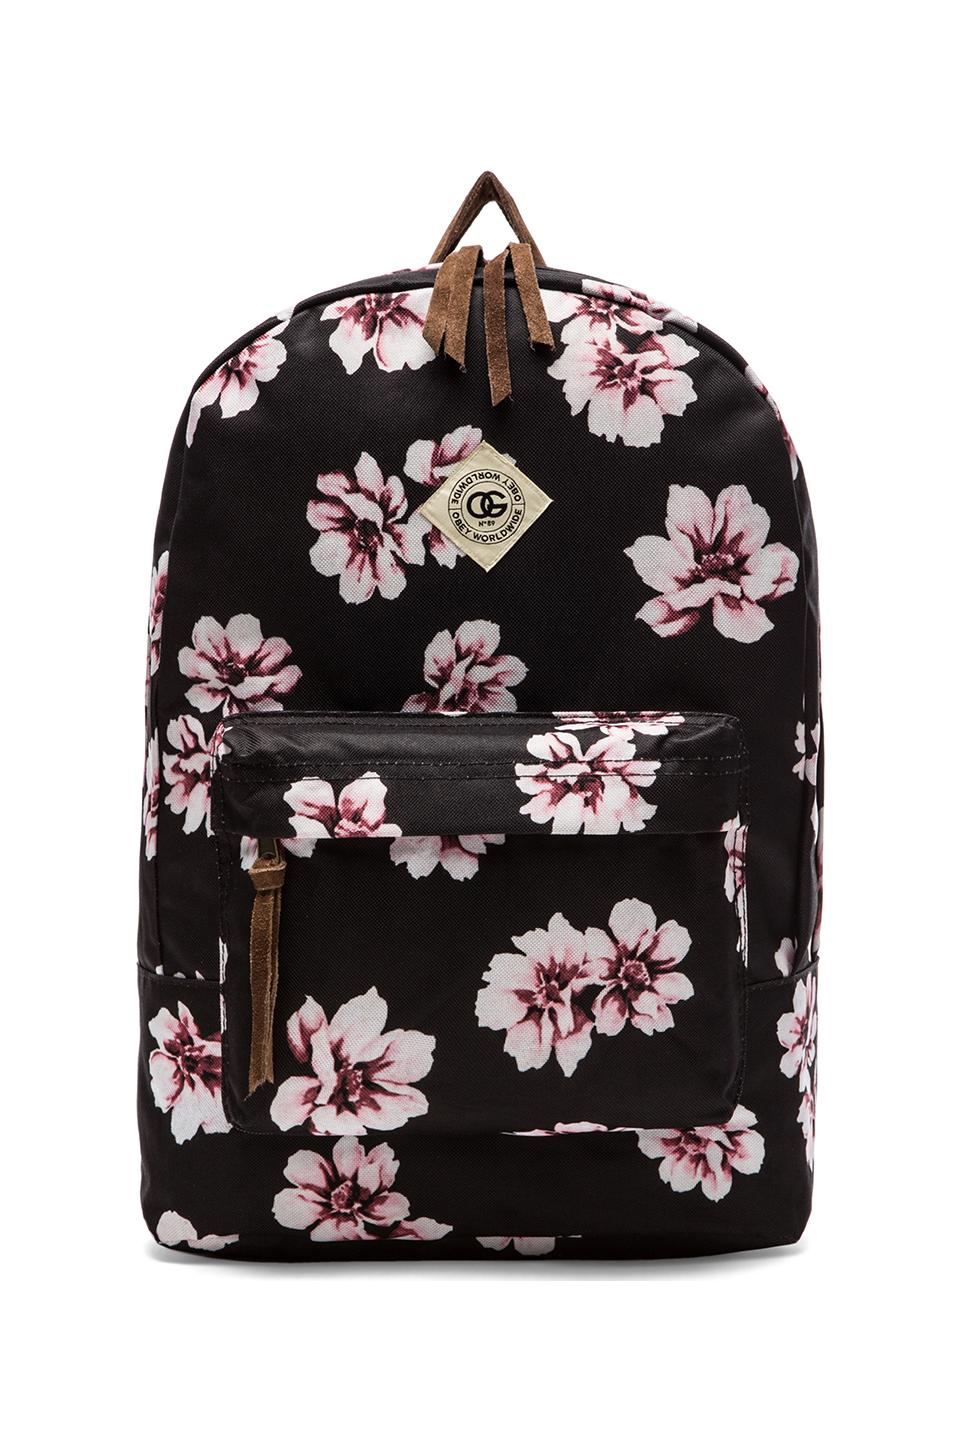 Obey Outsider Backpack in Black Floral